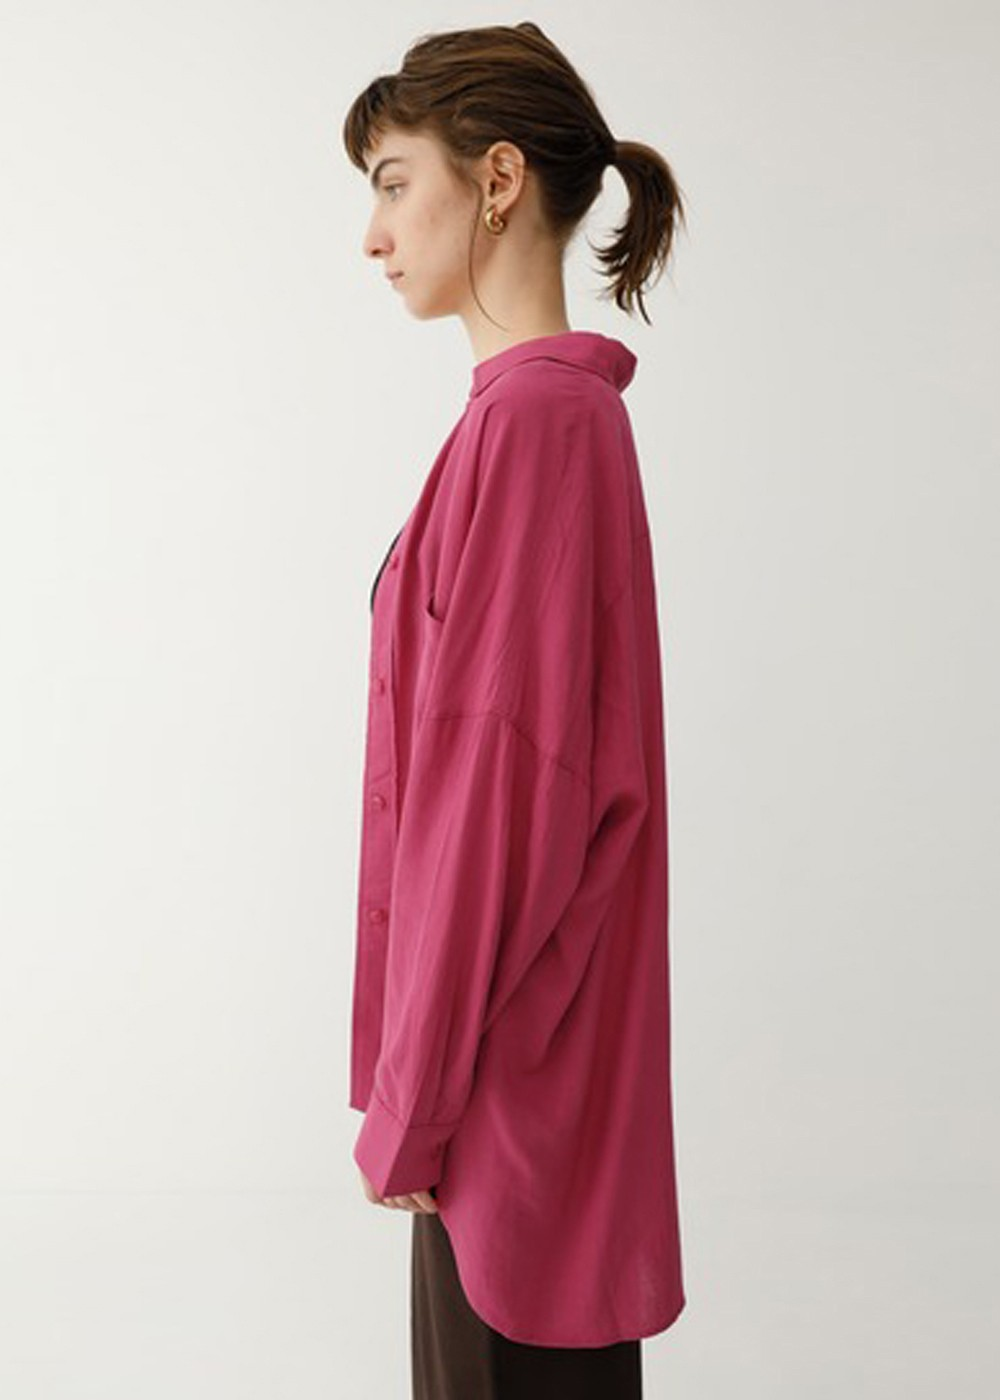 【最大60%OFF】OVER SILHOUETTE SHIRT|PNK|シャツ|MOUSSY